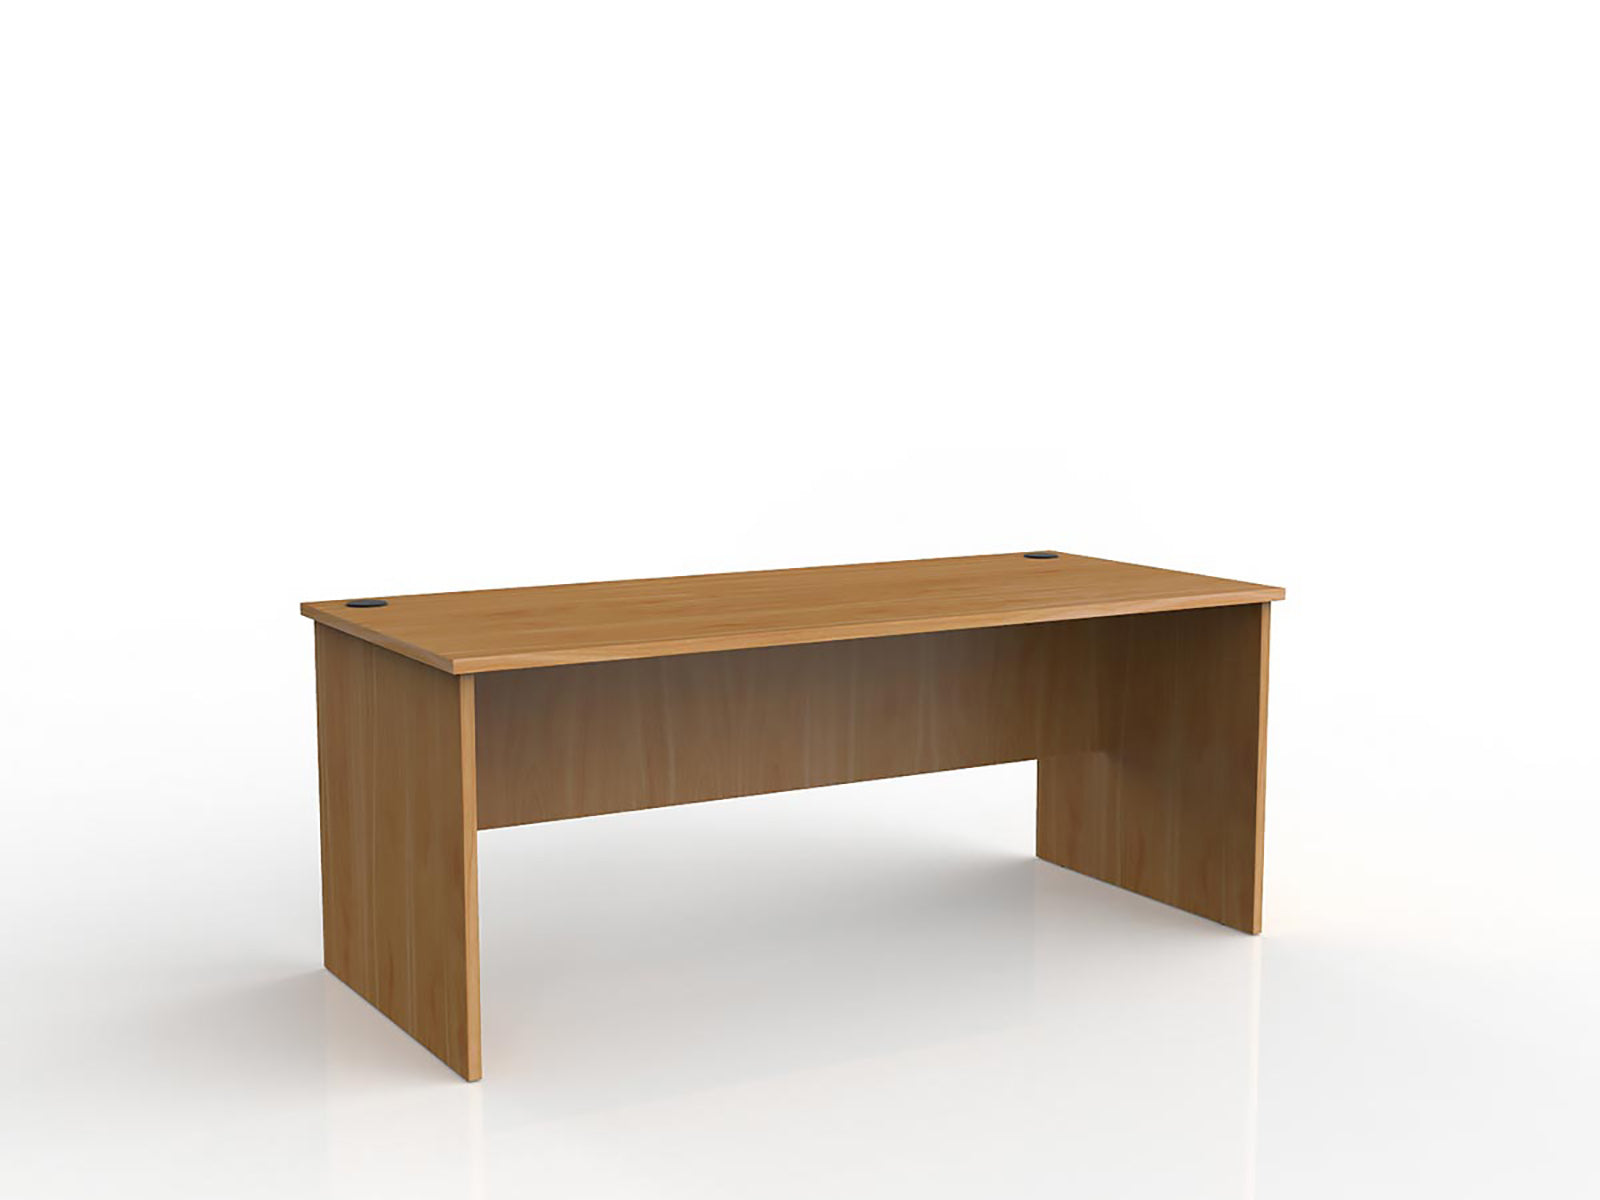 Ergoplan 1.8m Desk - Workspace Furniture Home and Office Desk